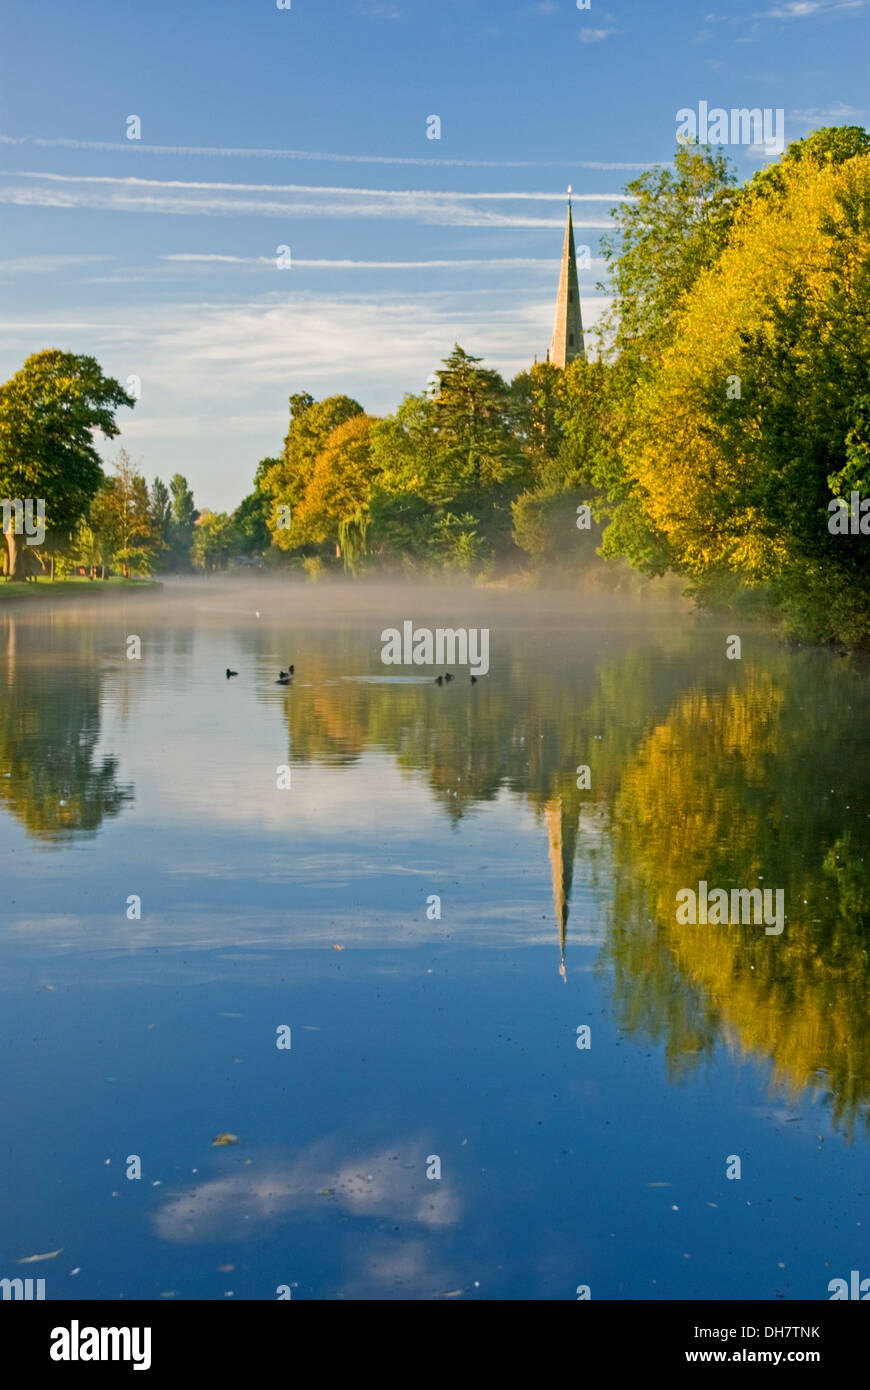 Autumnal reflections on the River Avon, with a view towards Holy Trinity church, burial place of William Shakespeare Stratford upon Avon - Stock Image